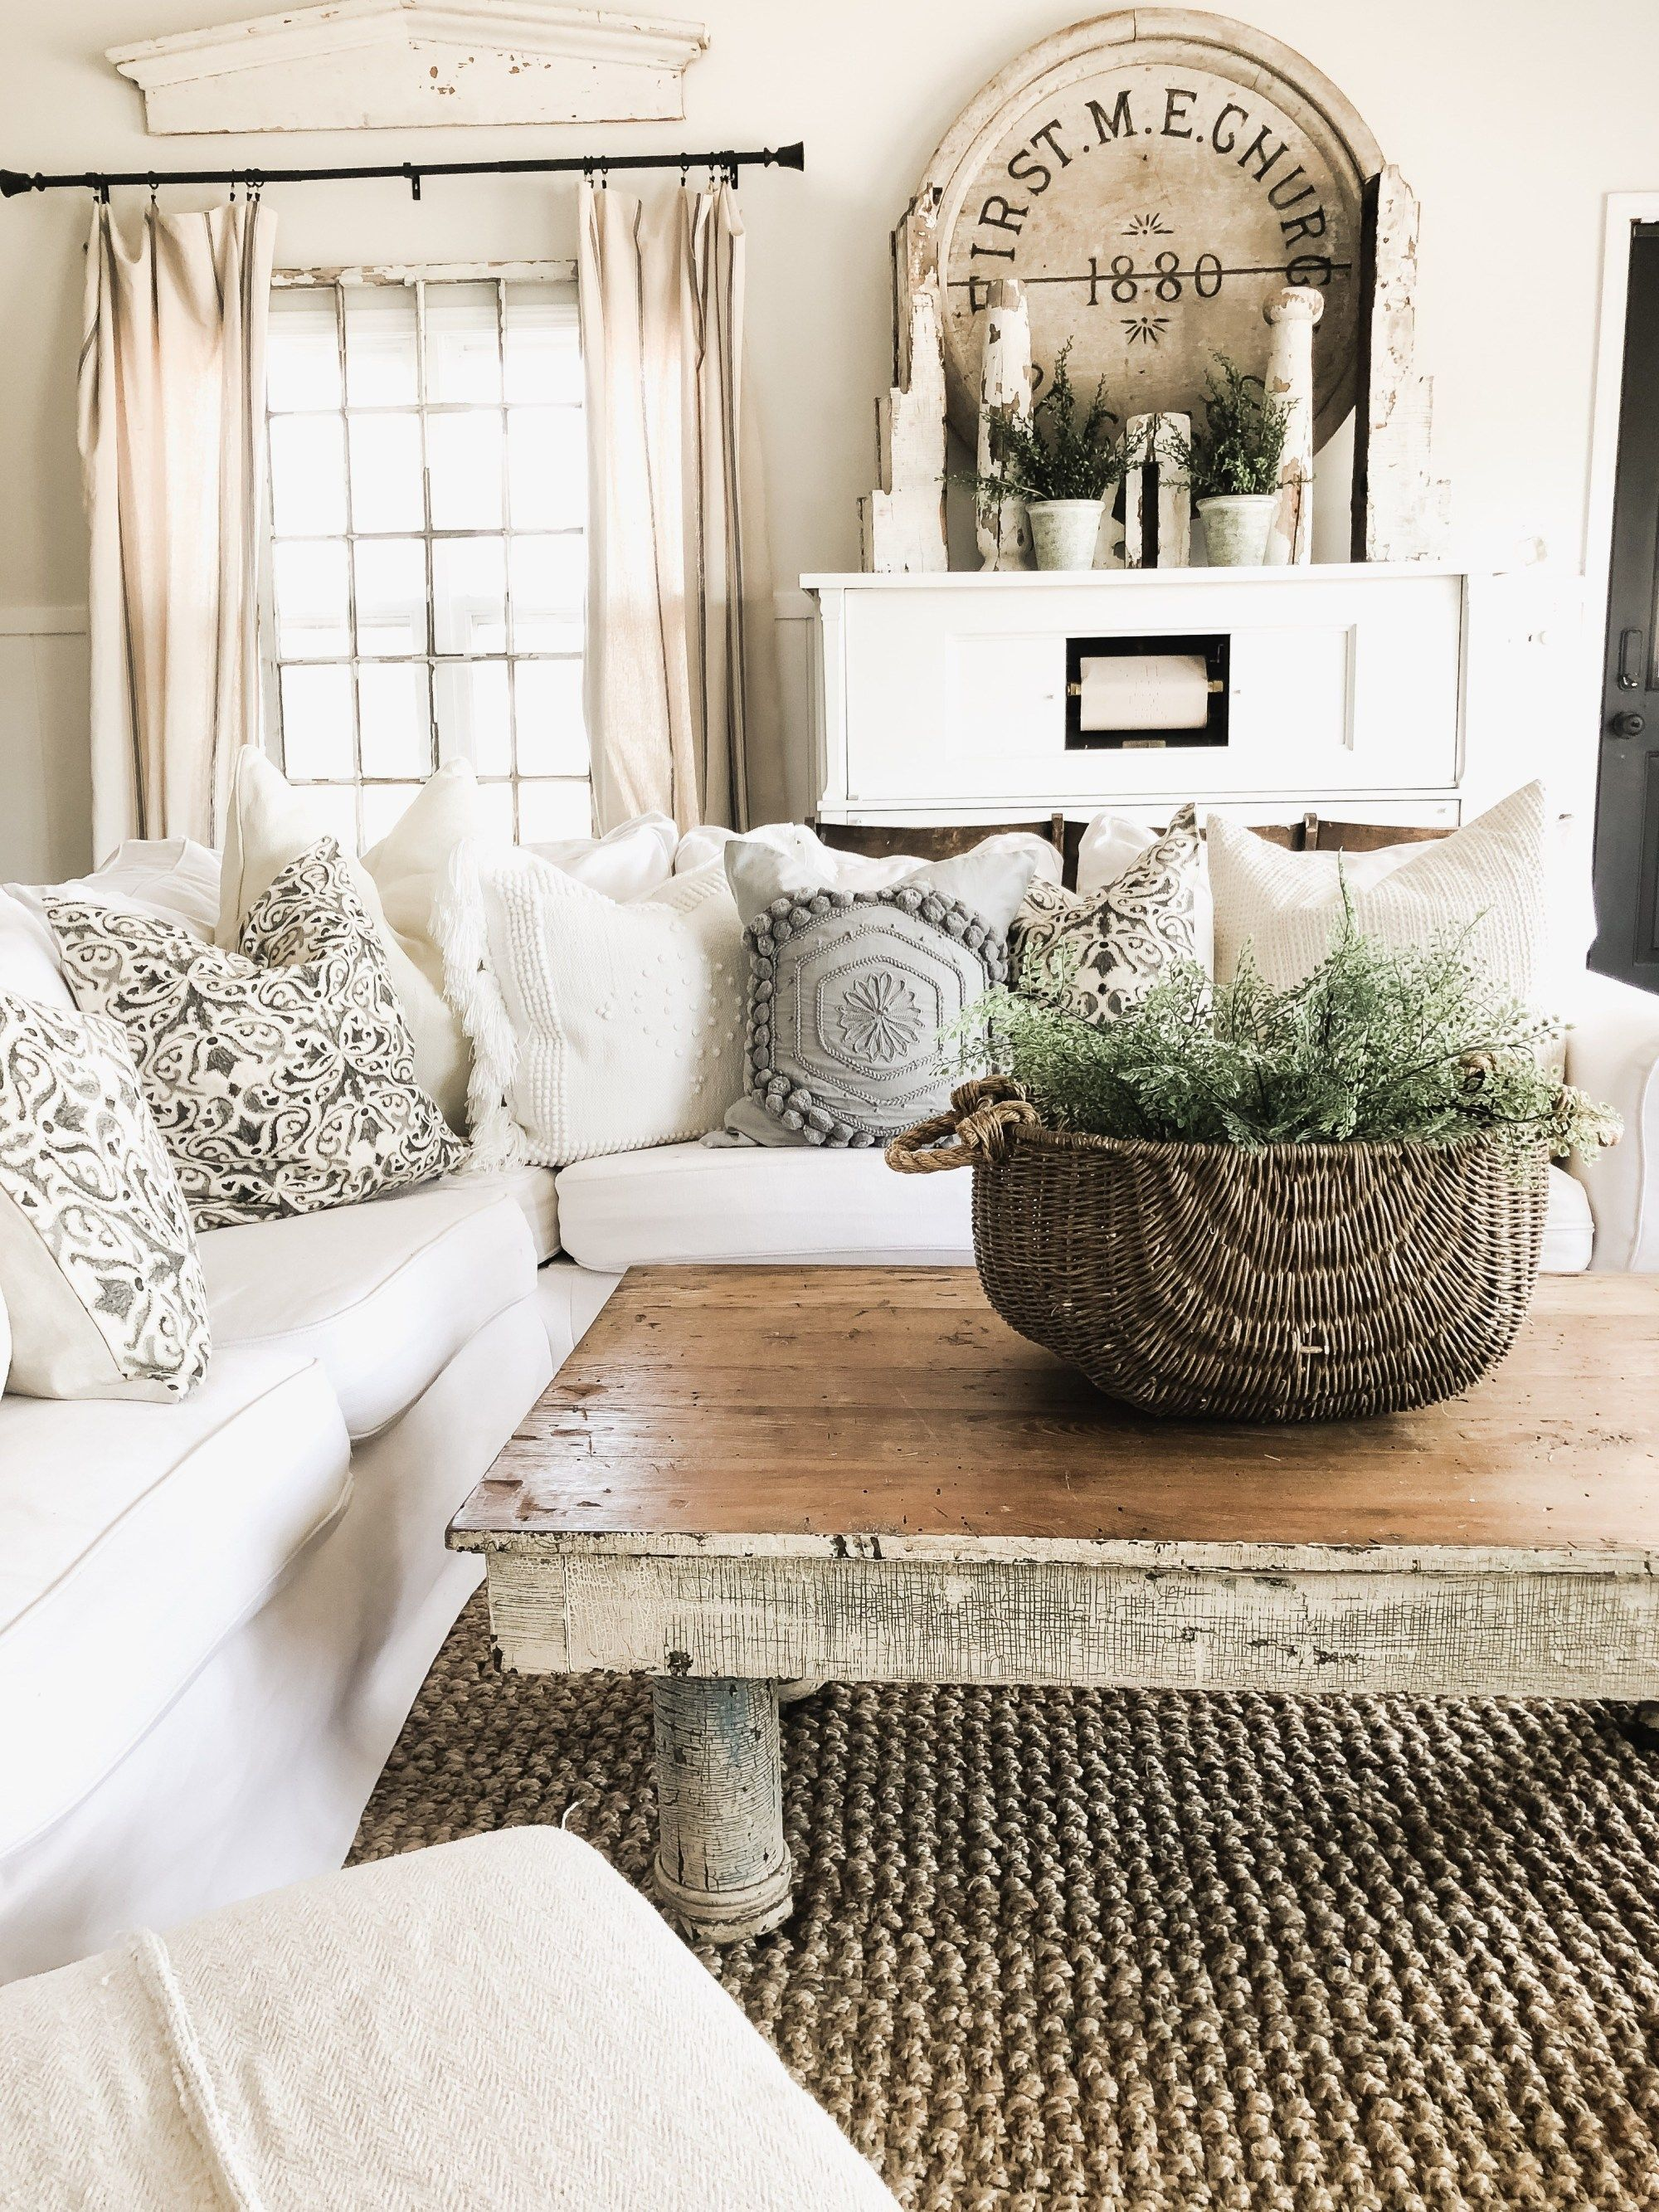 201 Help Me Decorate My Living Room 2021 In 2020 Farmhouse D